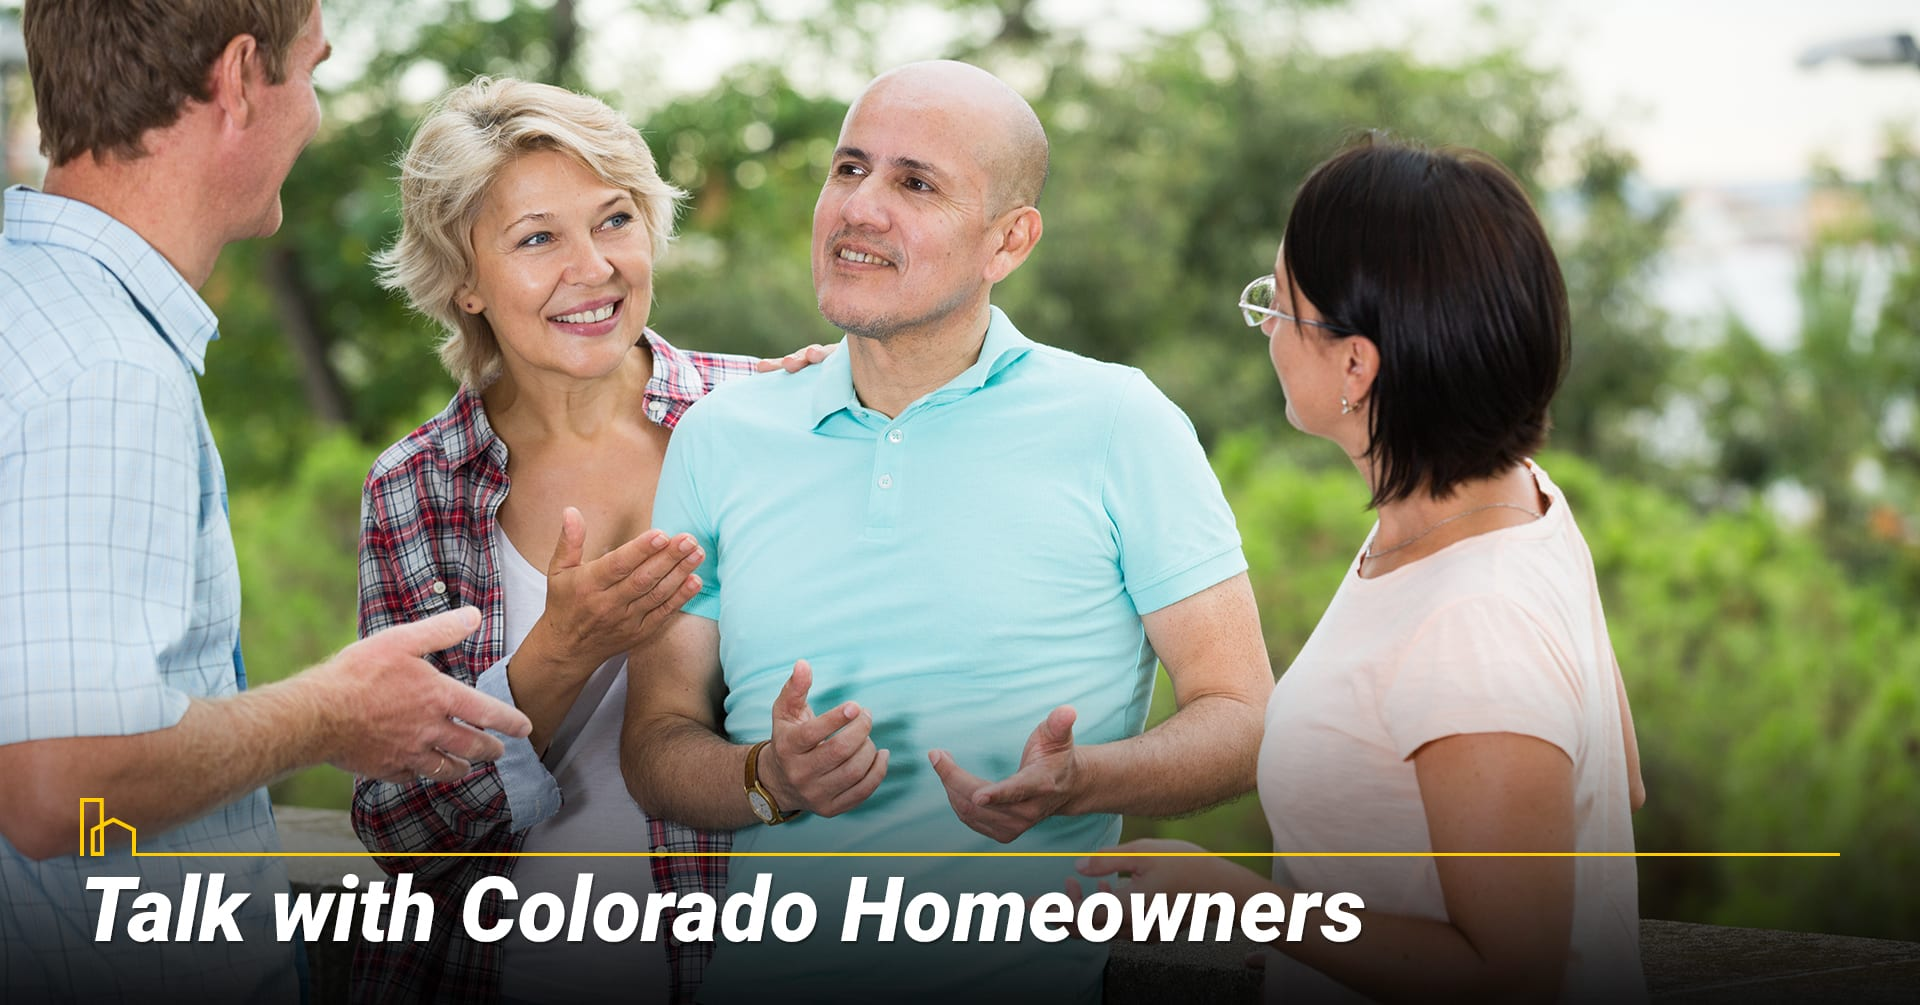 Talk with Colorado Homeowners, chat with current owners